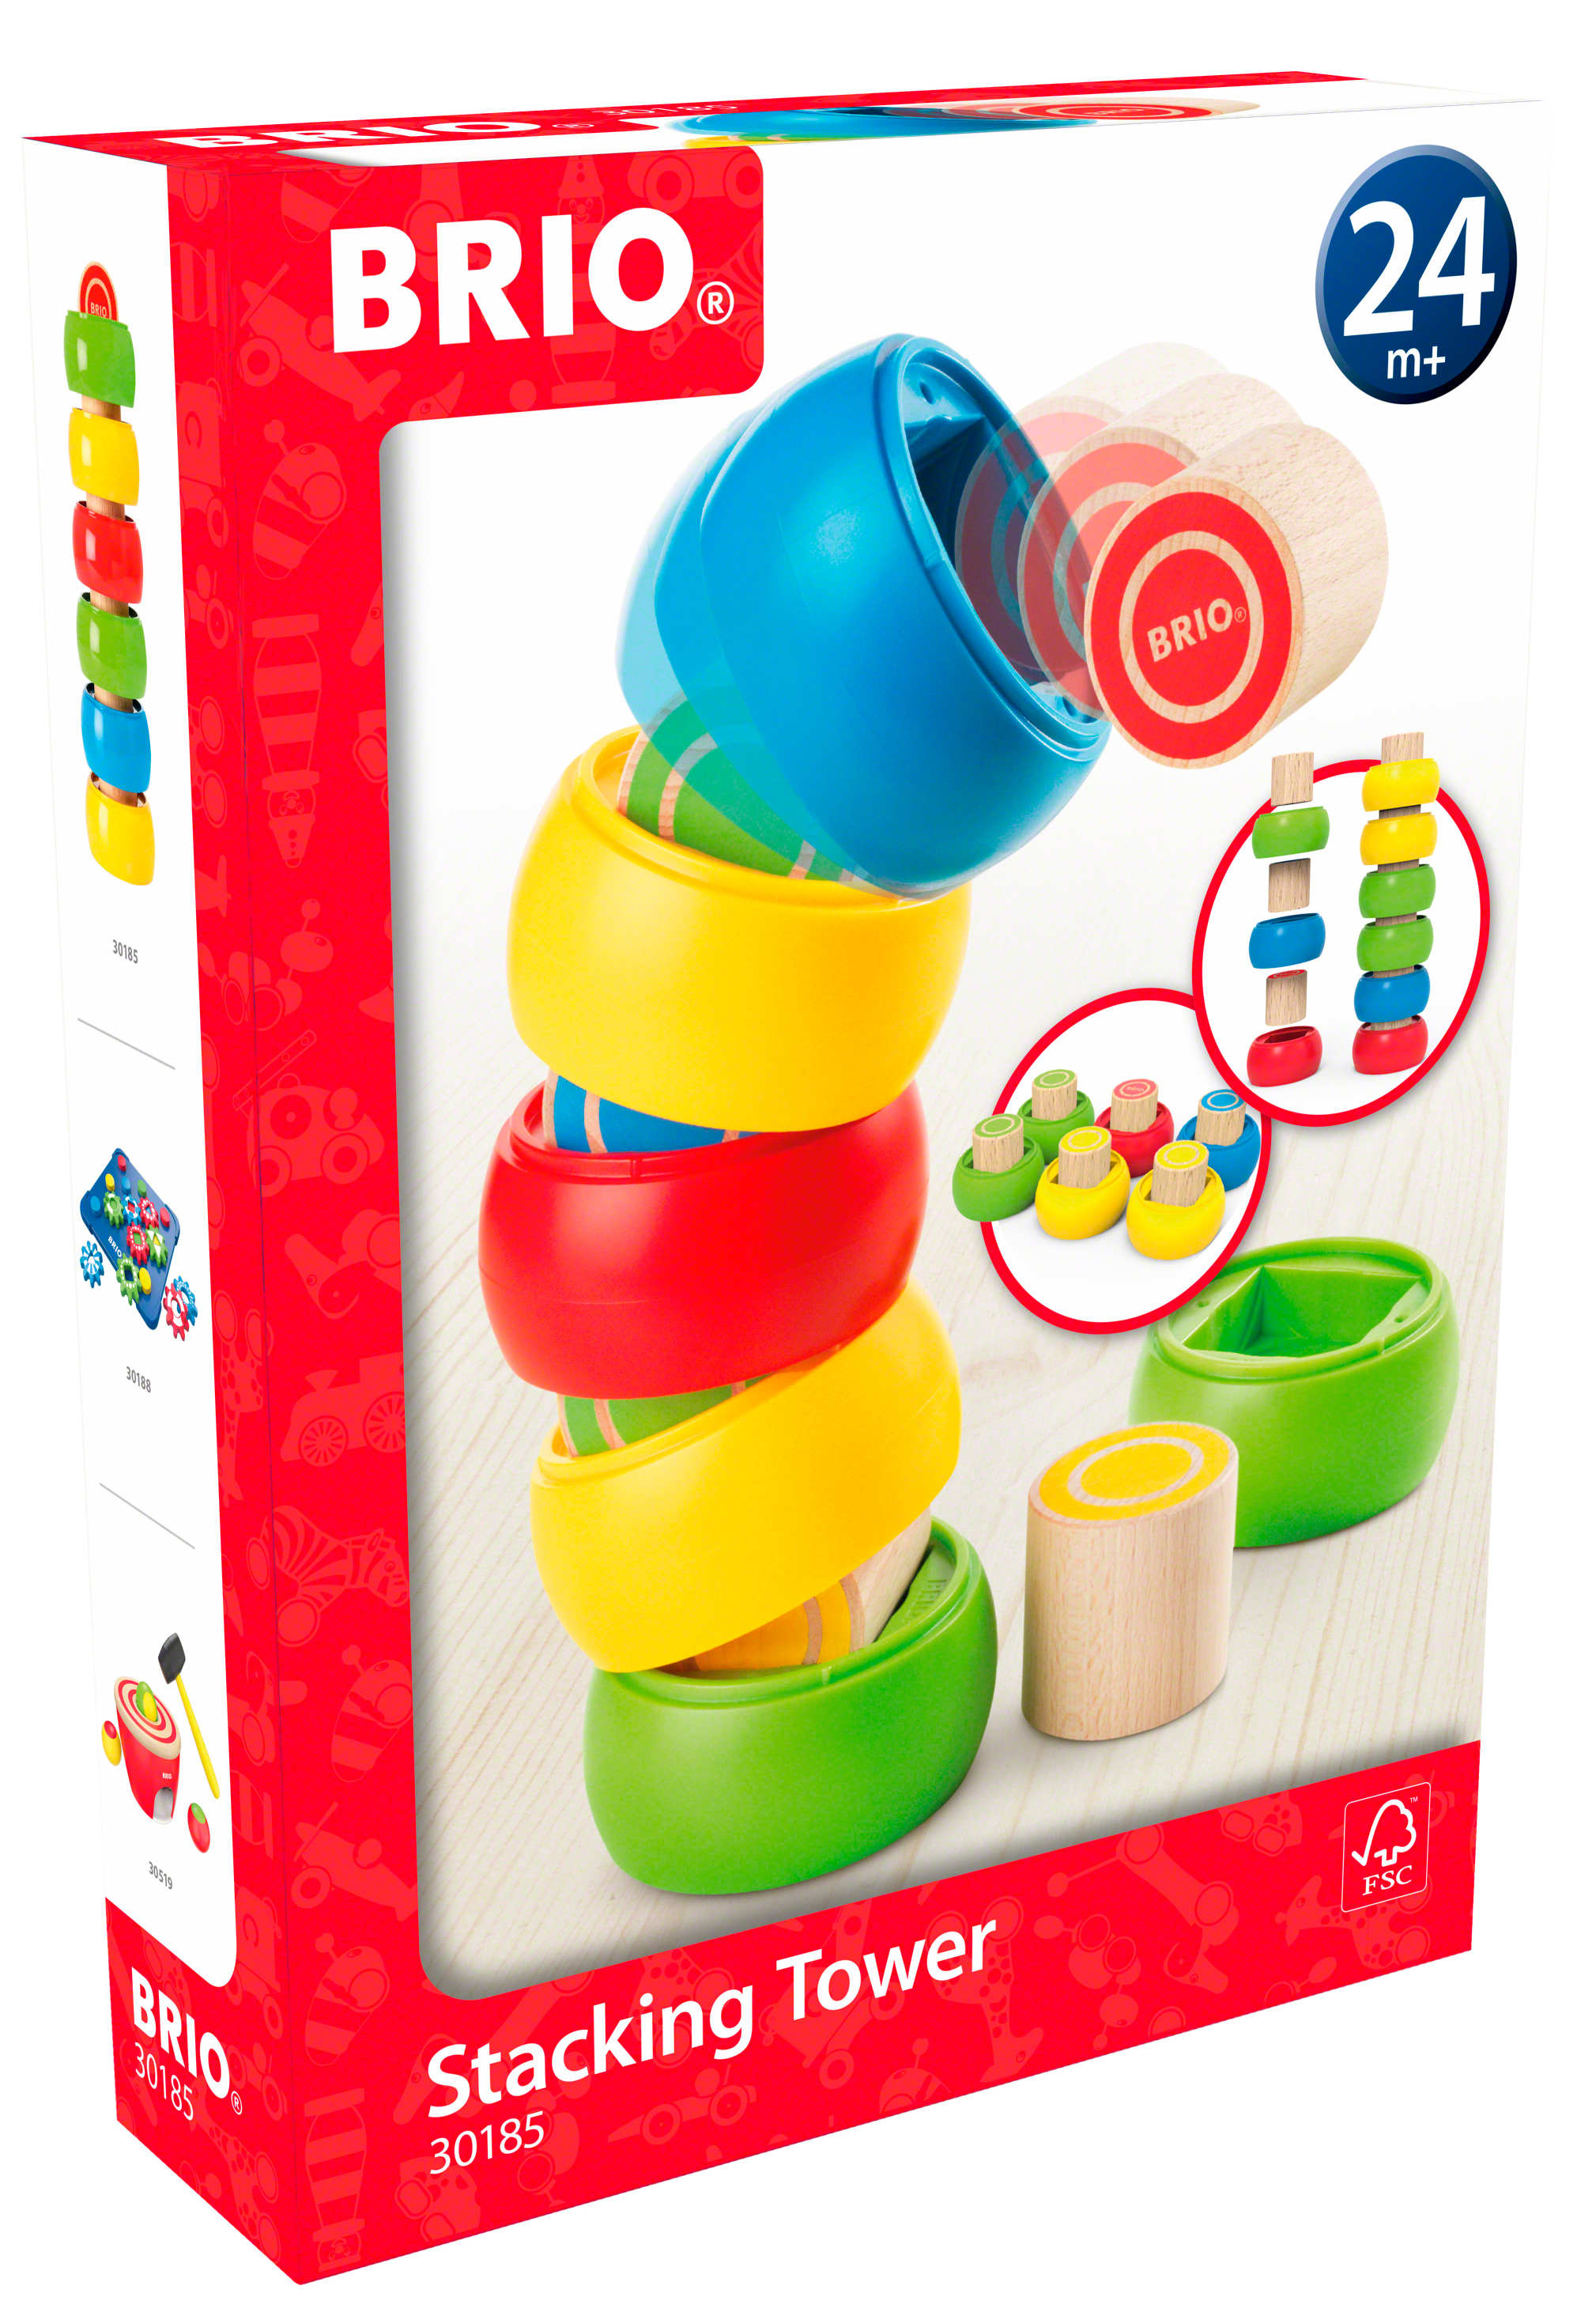 f1324c650a43 30185 BRIO Tumble   Stacking Tower Wooden Sorting Toy Toddler ...